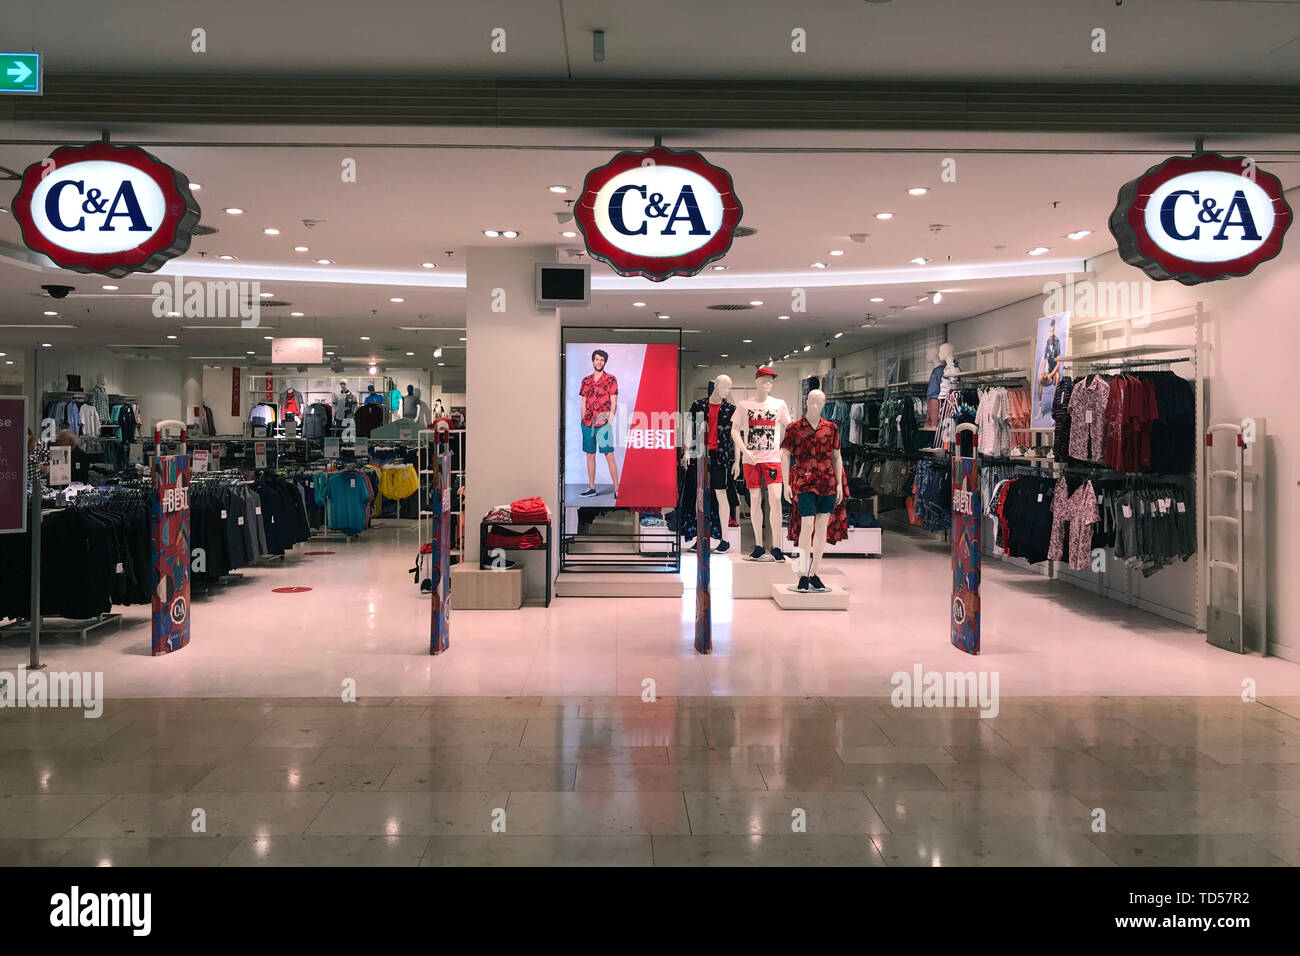 Munich, Germany. 12th June, 2019. C and A store, store, shop, entrance, clothing company, entrance area, retail, shop, fashion brand, fashion chain, Texi | usage worldwide Credit: dpa/Alamy Live News - Stock Image